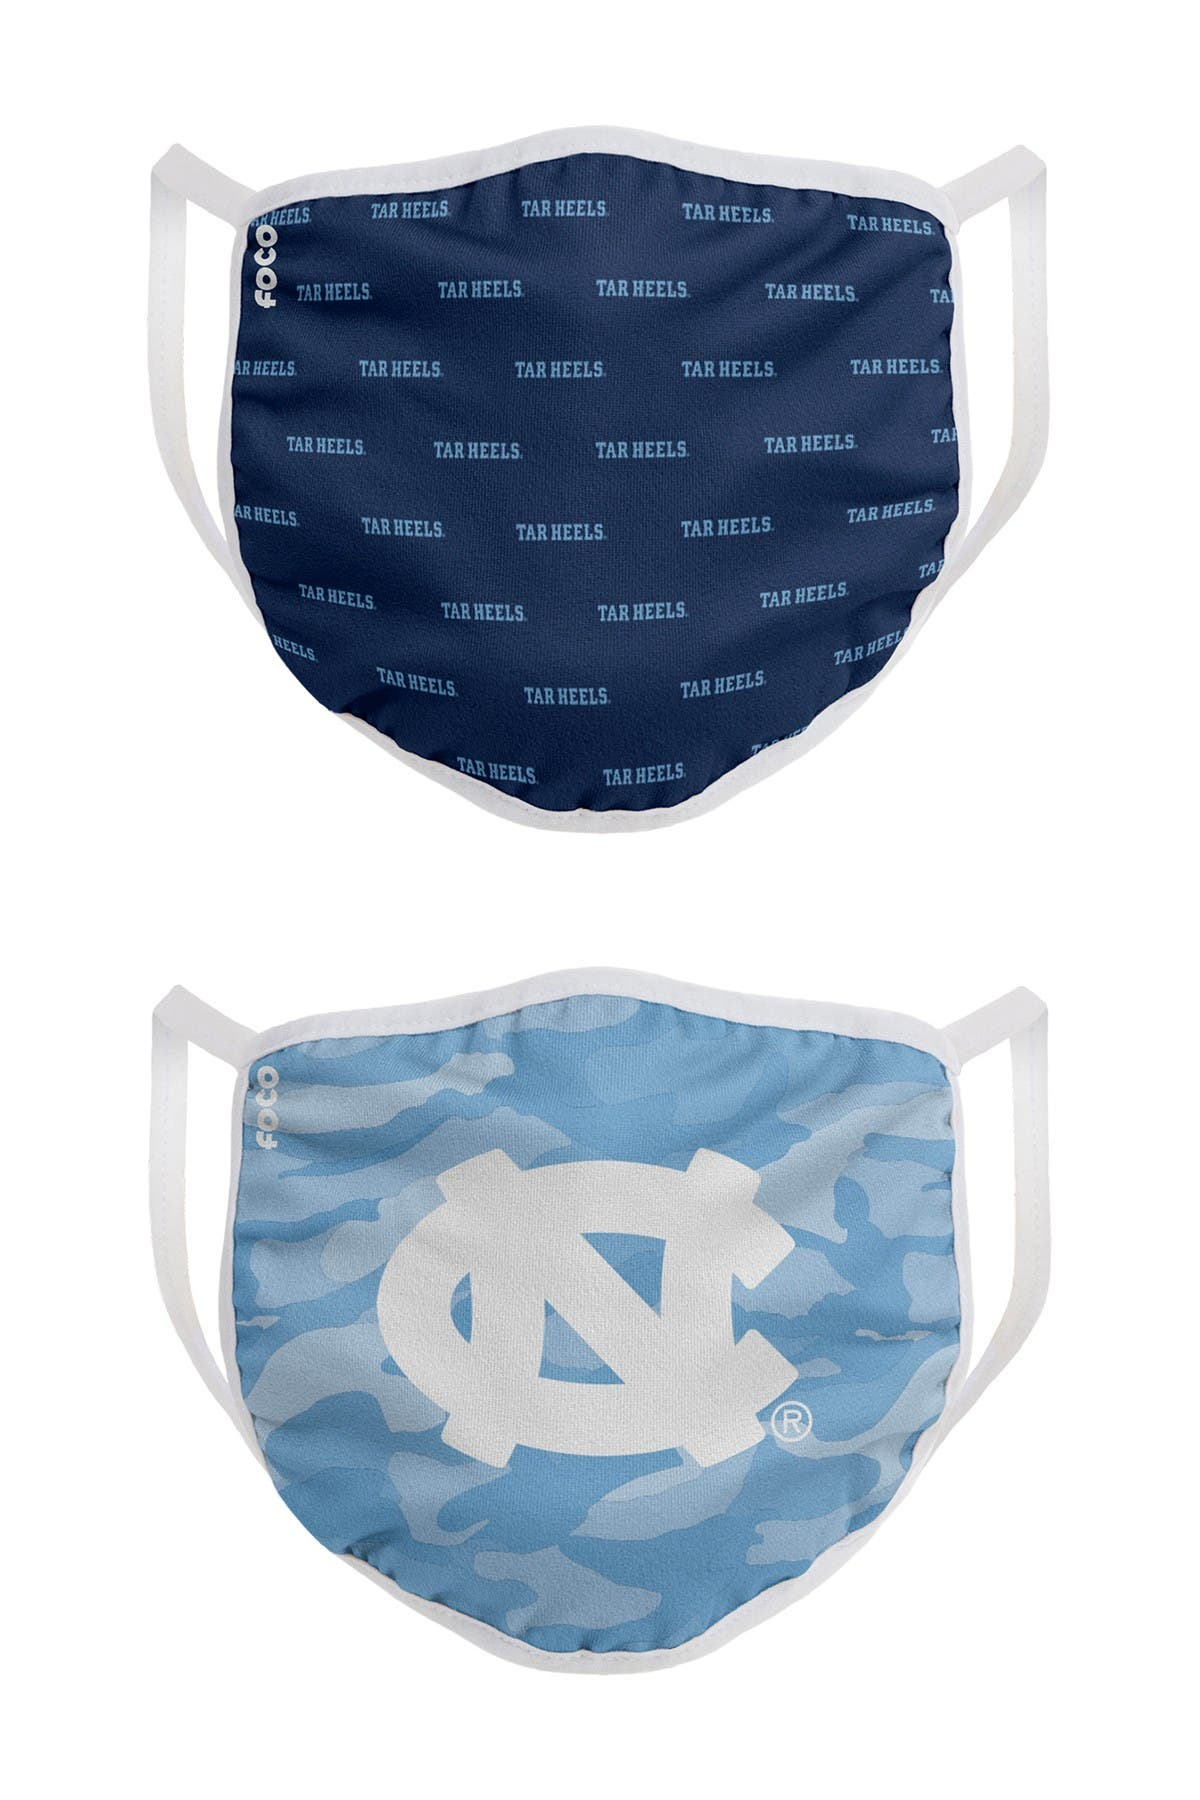 Image of FOCO NCAA North Carolina Clutch Printed Face Cover - Pack of 2